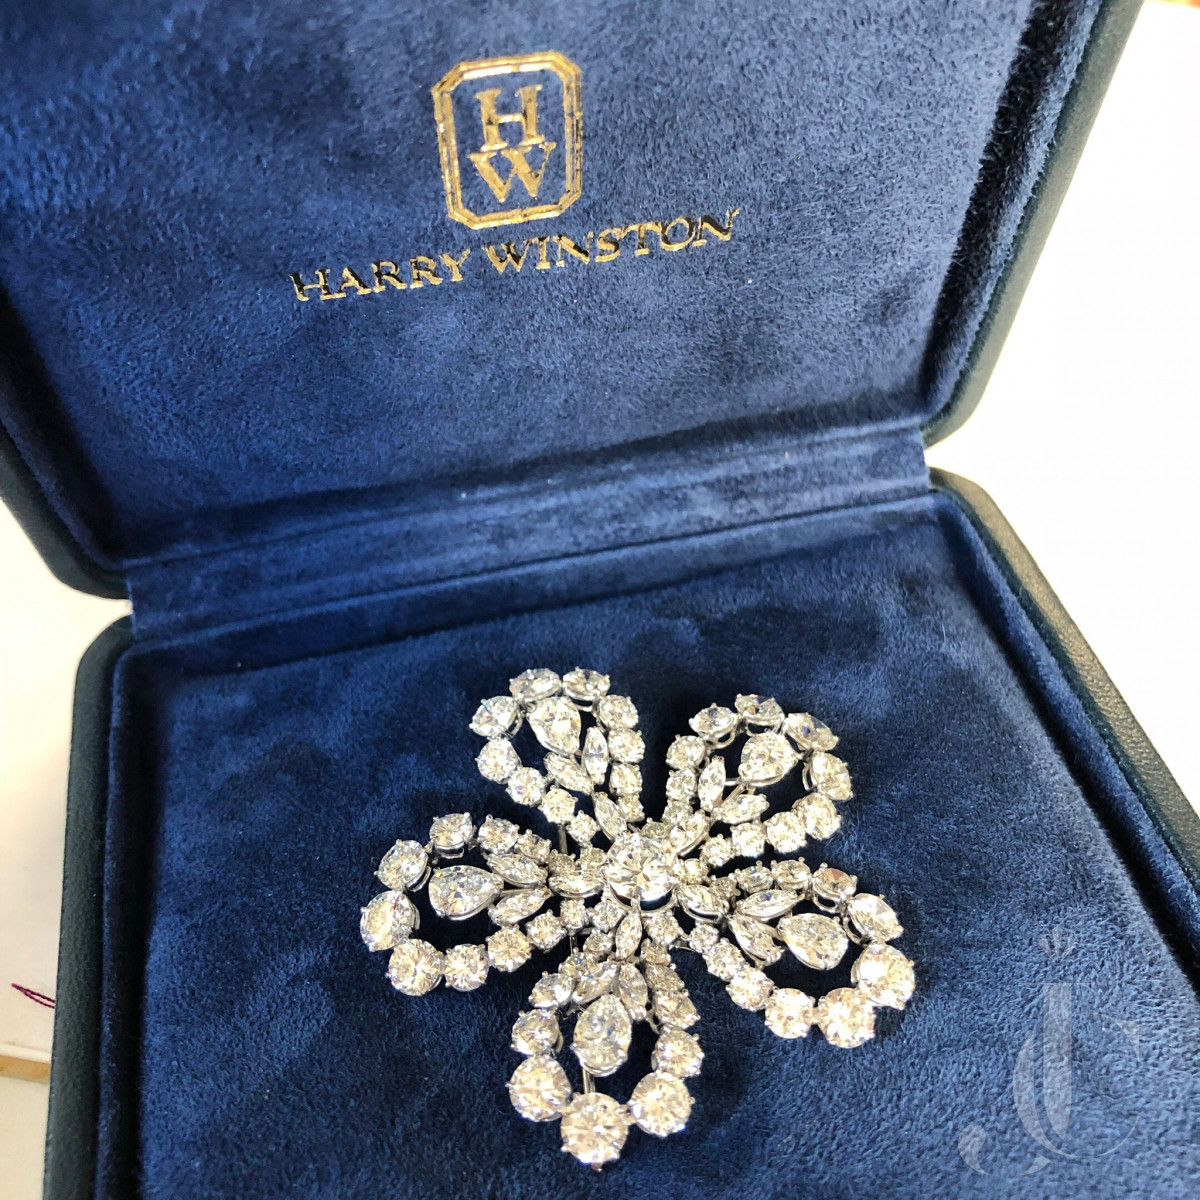 Platinum Diamonds Brooch, Harry Winston, circa 1952 See Letter attached